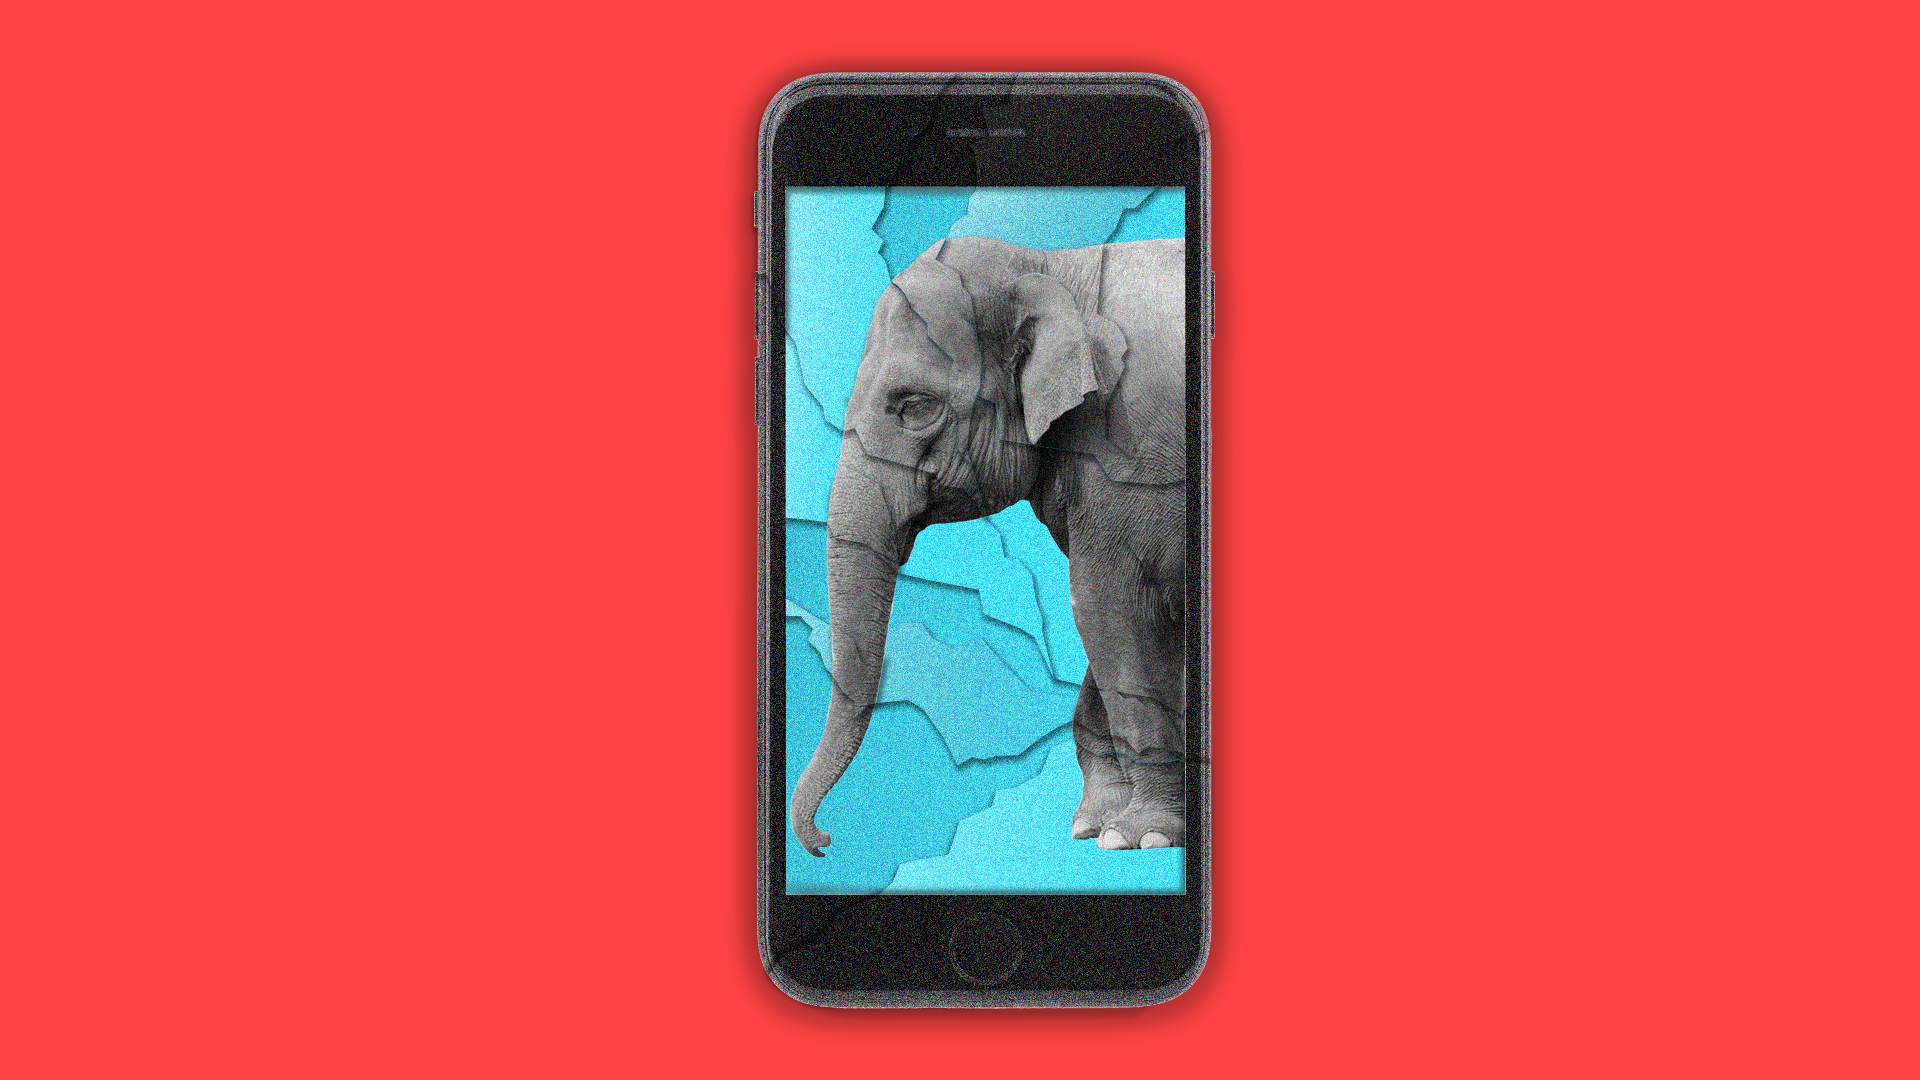 Smartphone with an elephant on the screen